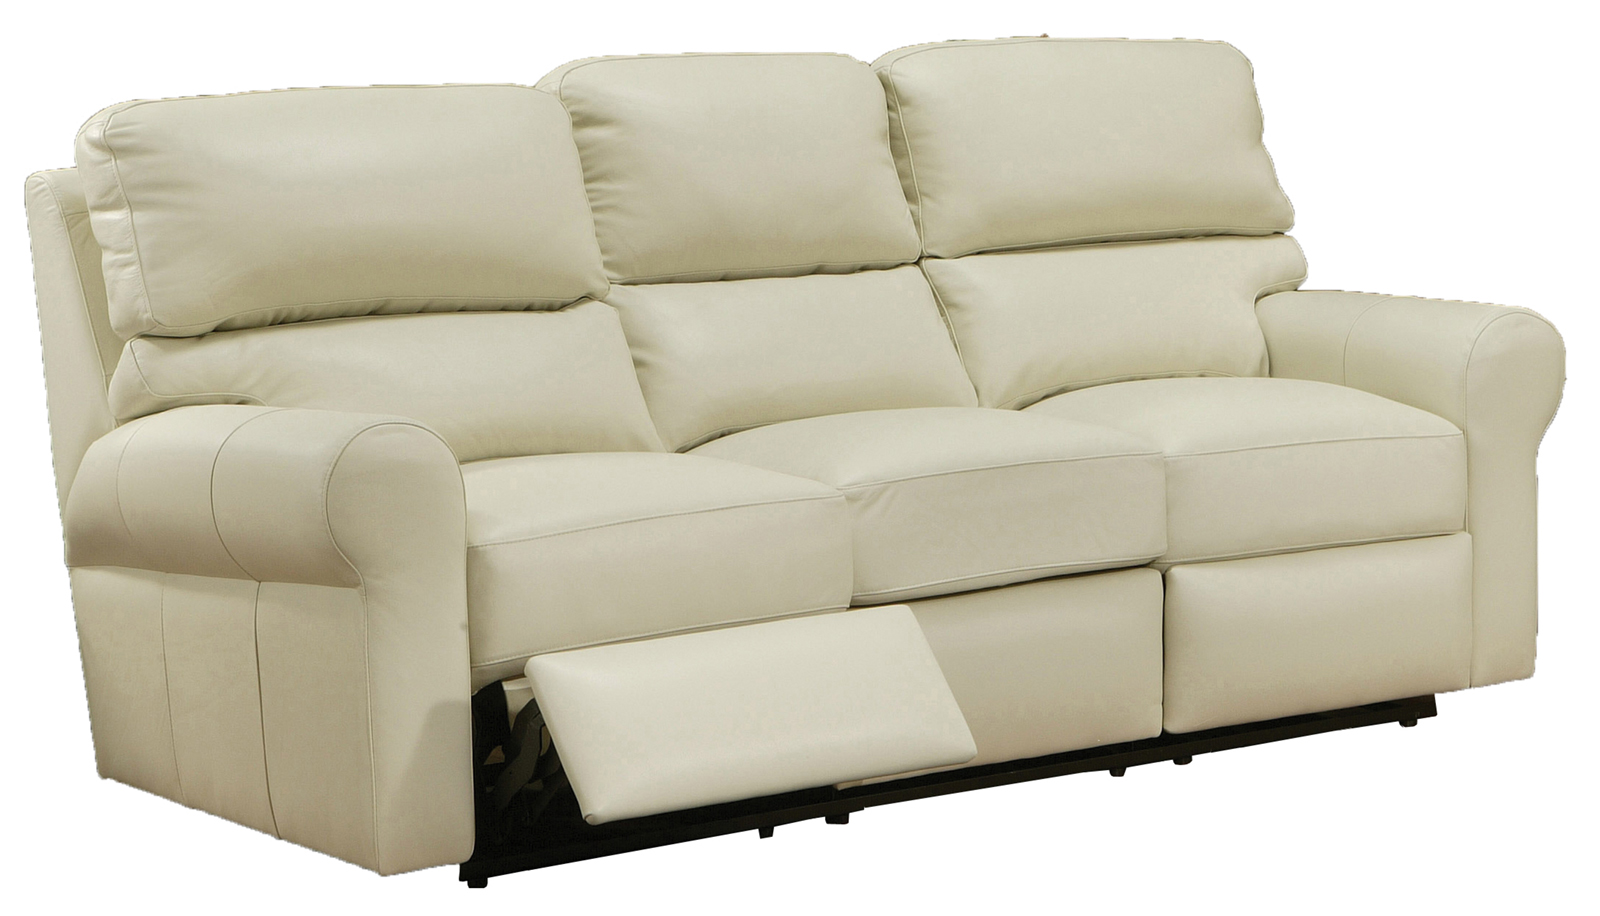 omnia sofa prices down blend sectional brookfield theater seating available  arizona leather